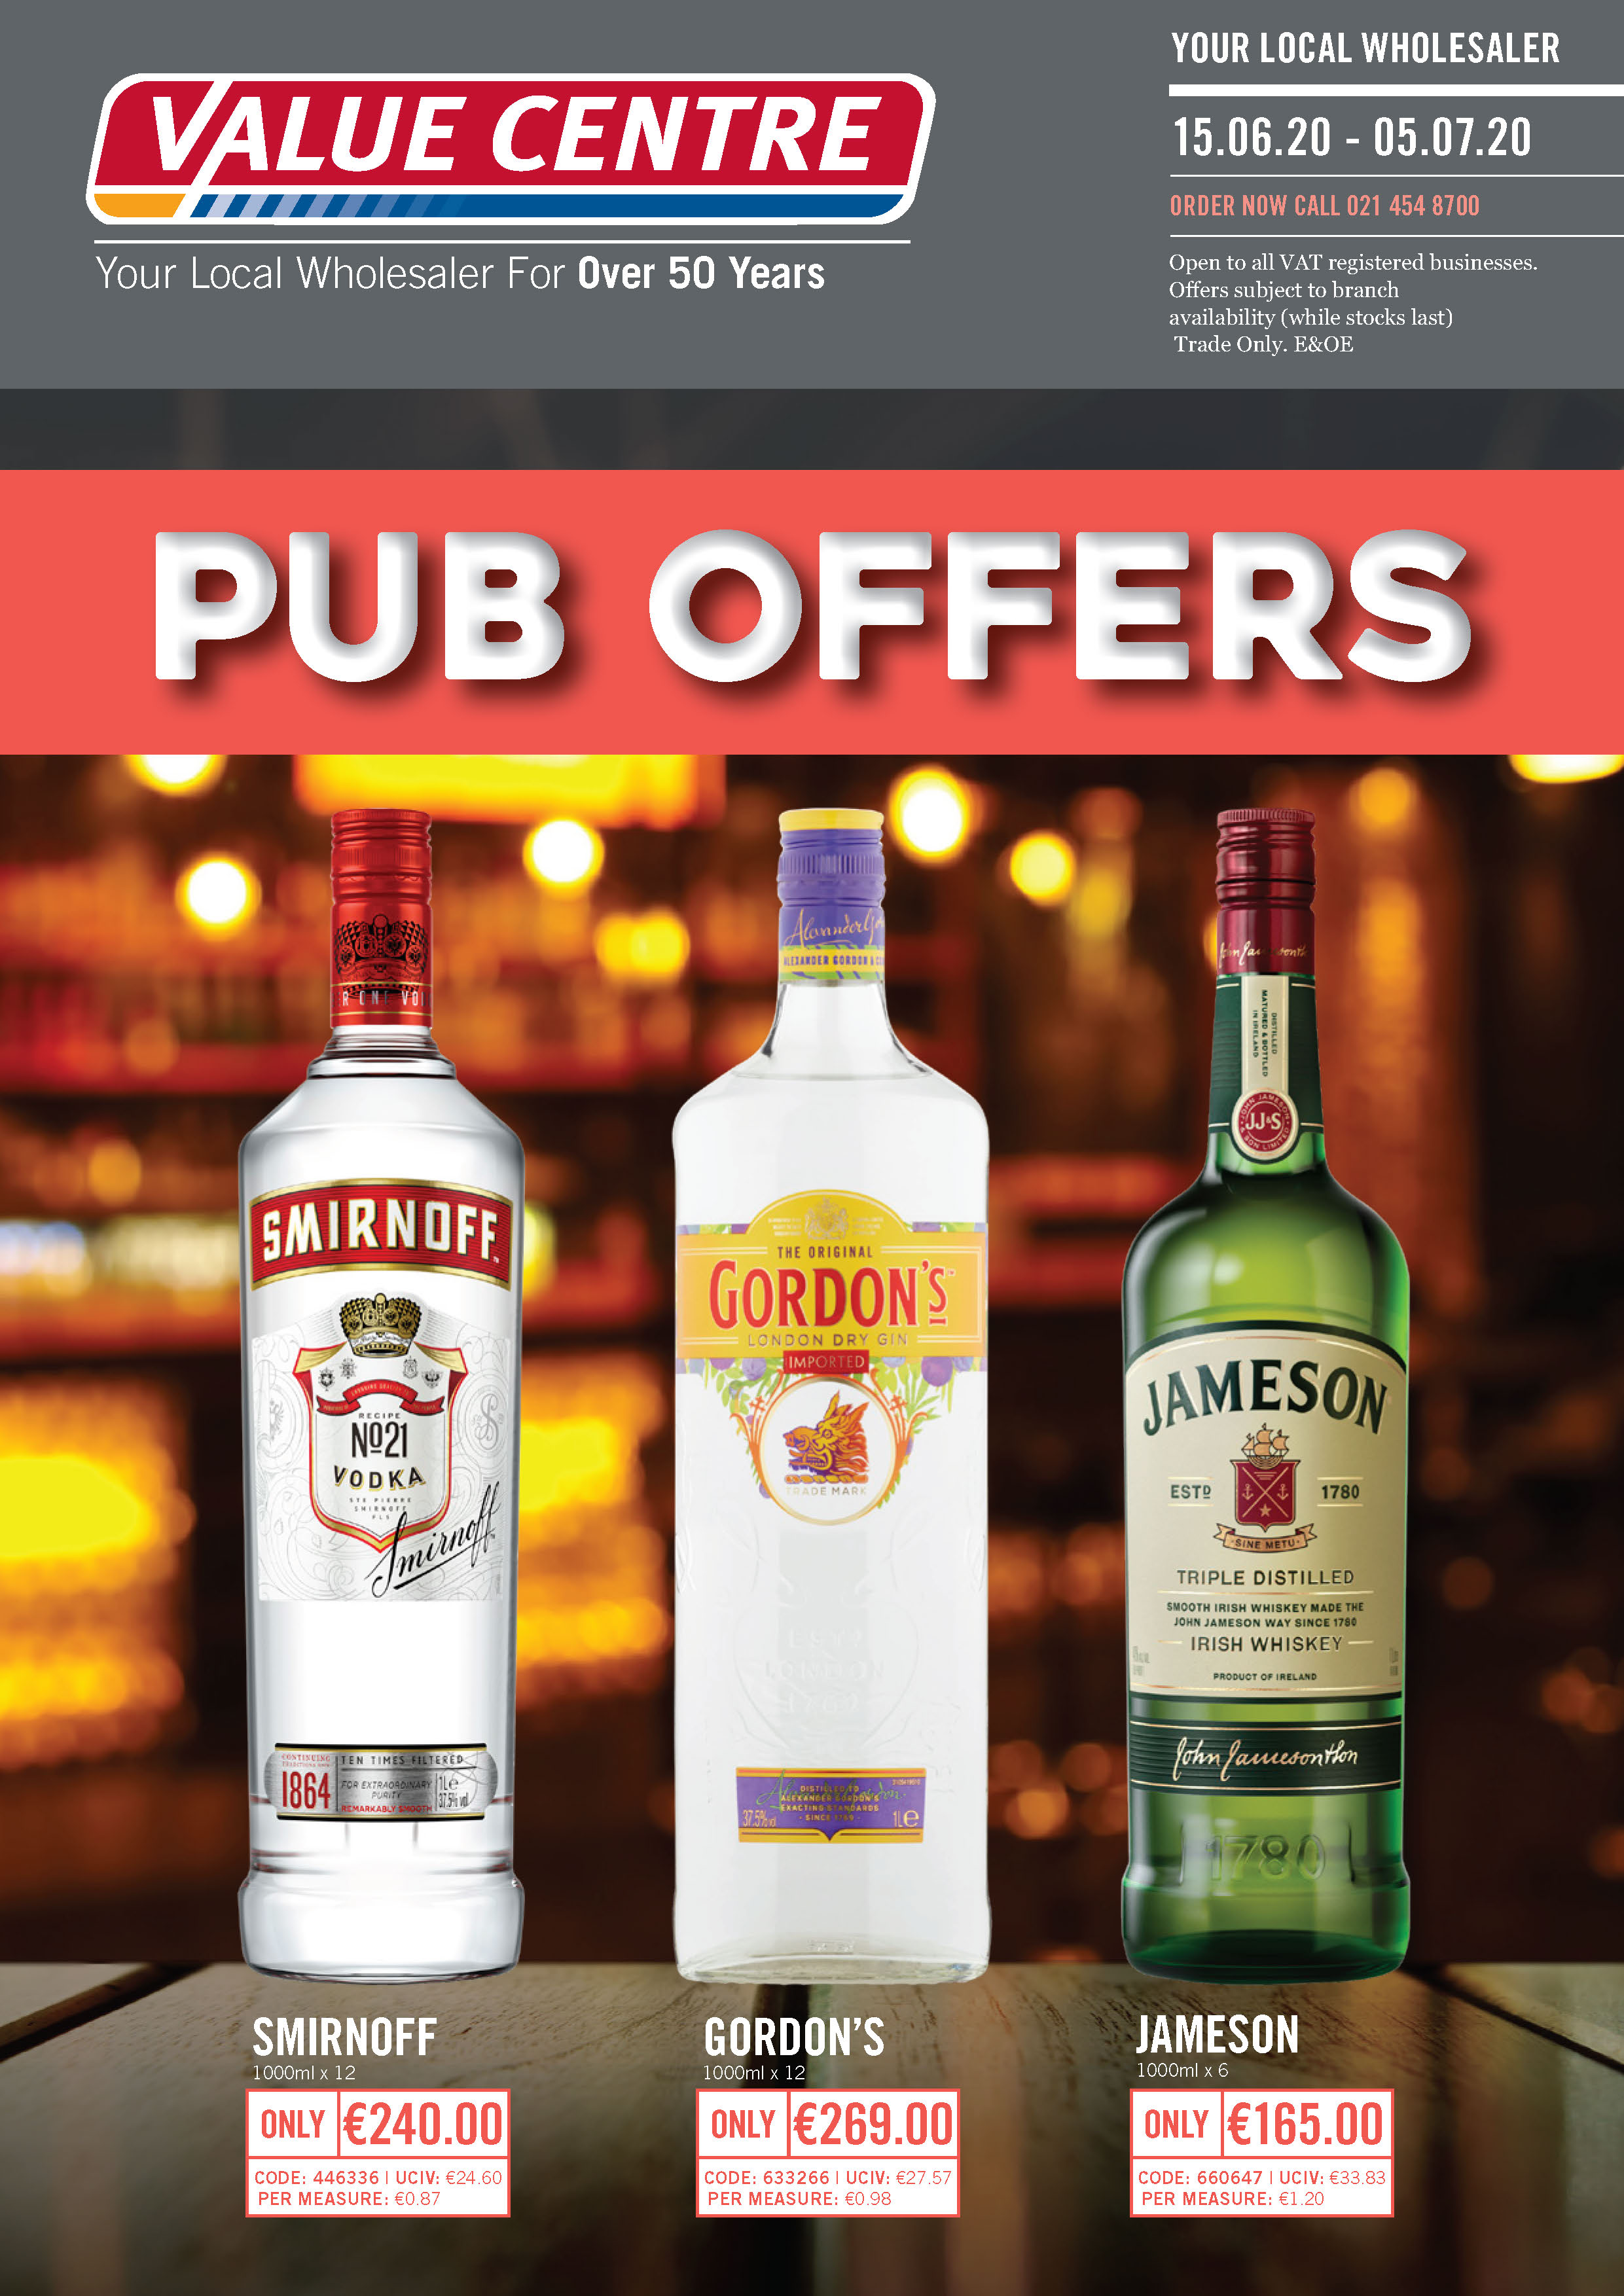 Pub Offers